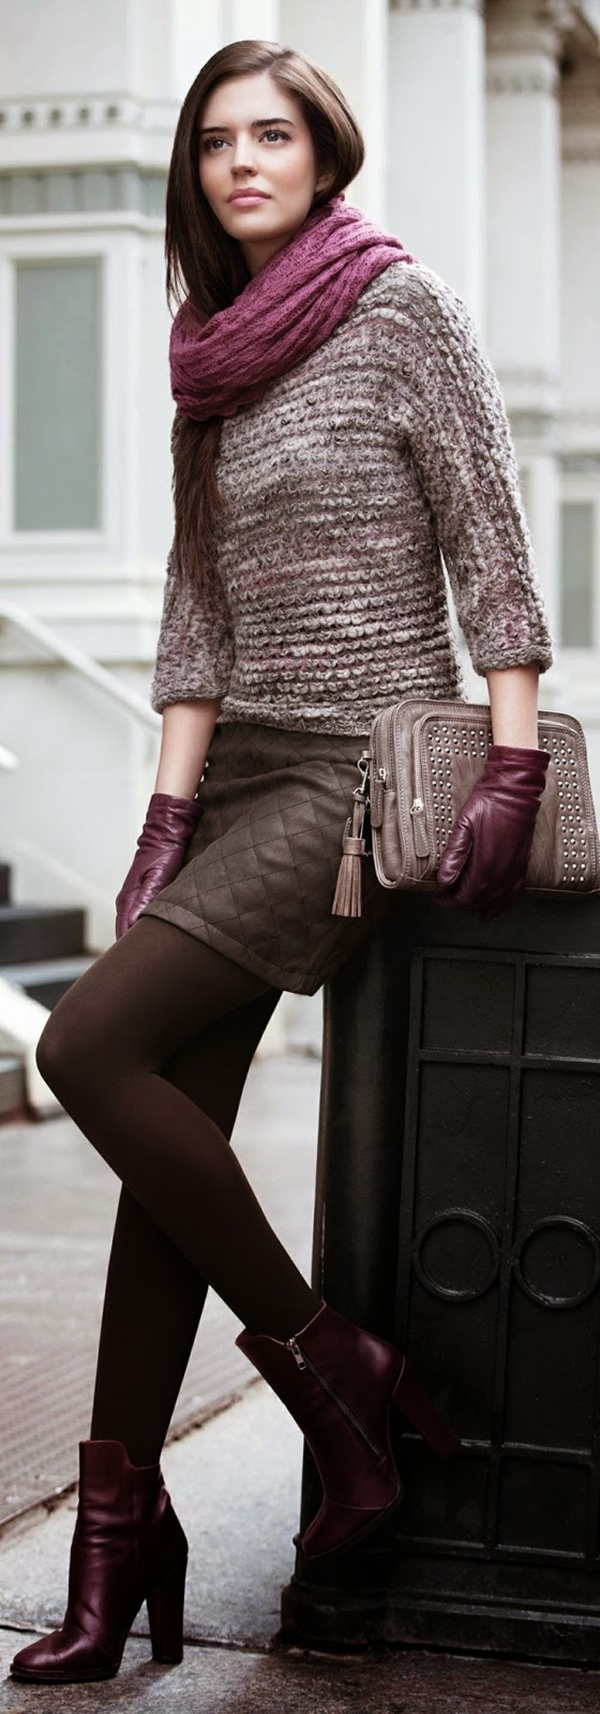 winter-street-style-outfits-15